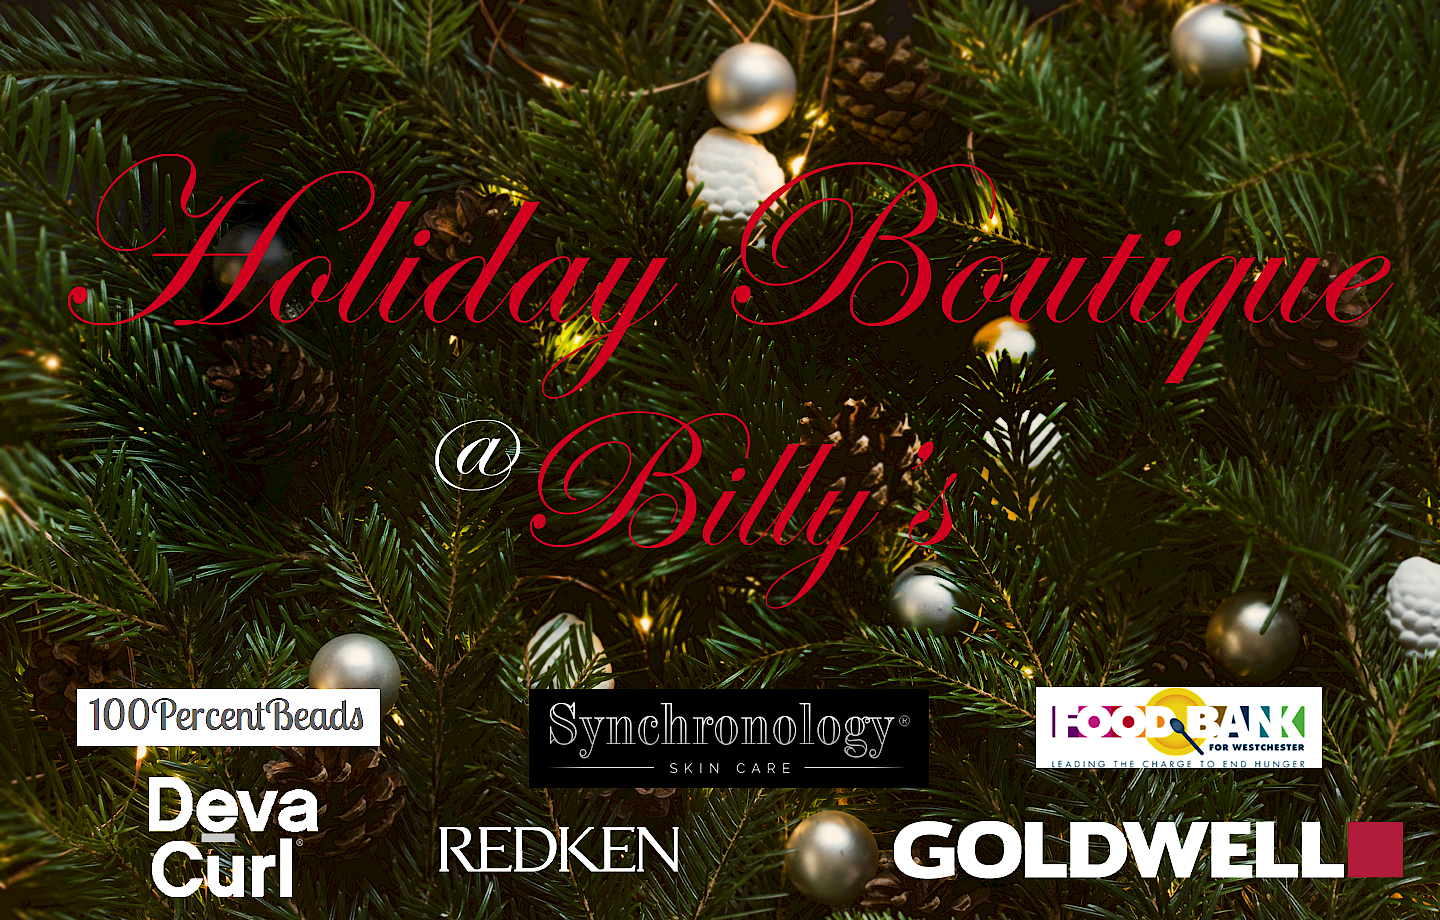 Holiday Boutique Days at Billy's image